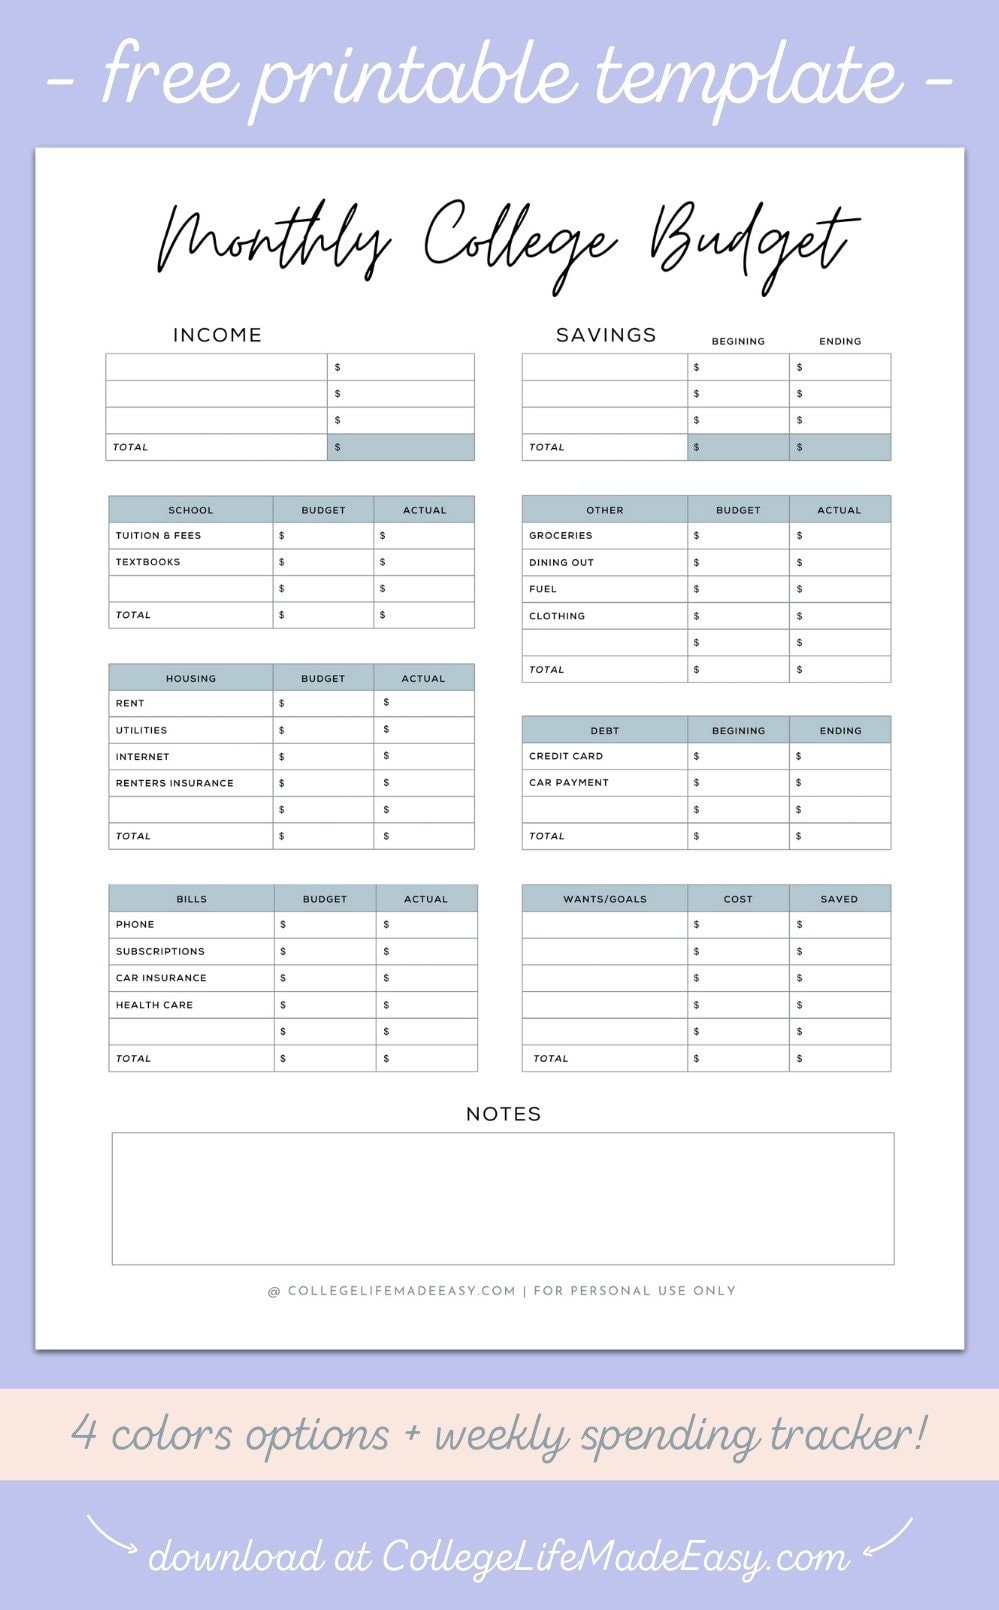 free printable college budget template infographic to save to Pinterest